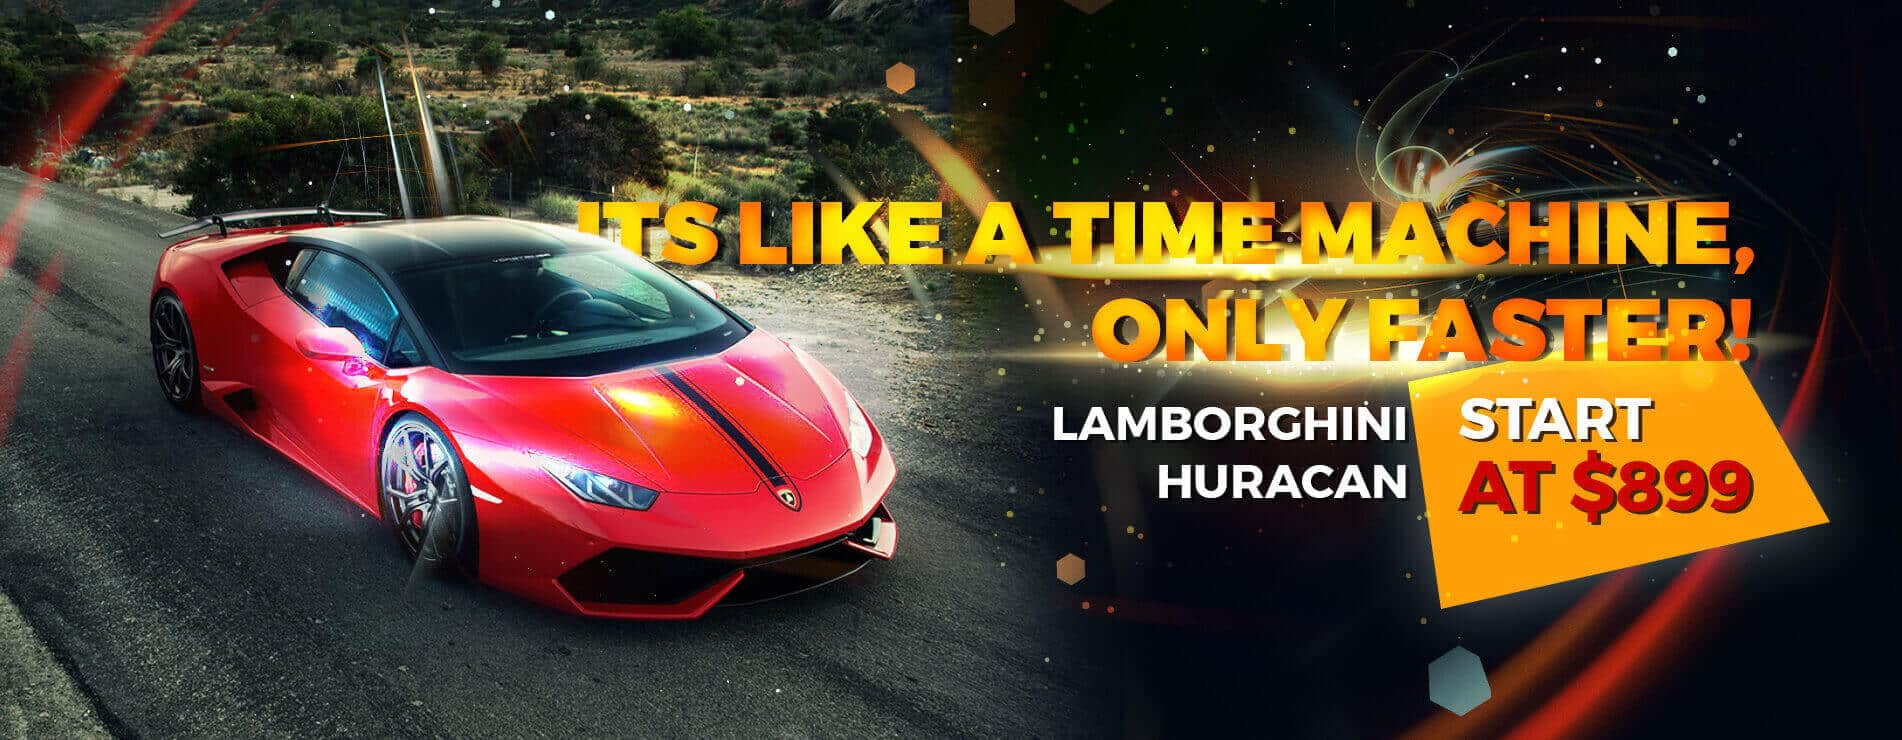 to rent vegas in date a how much lamborghini cars release las